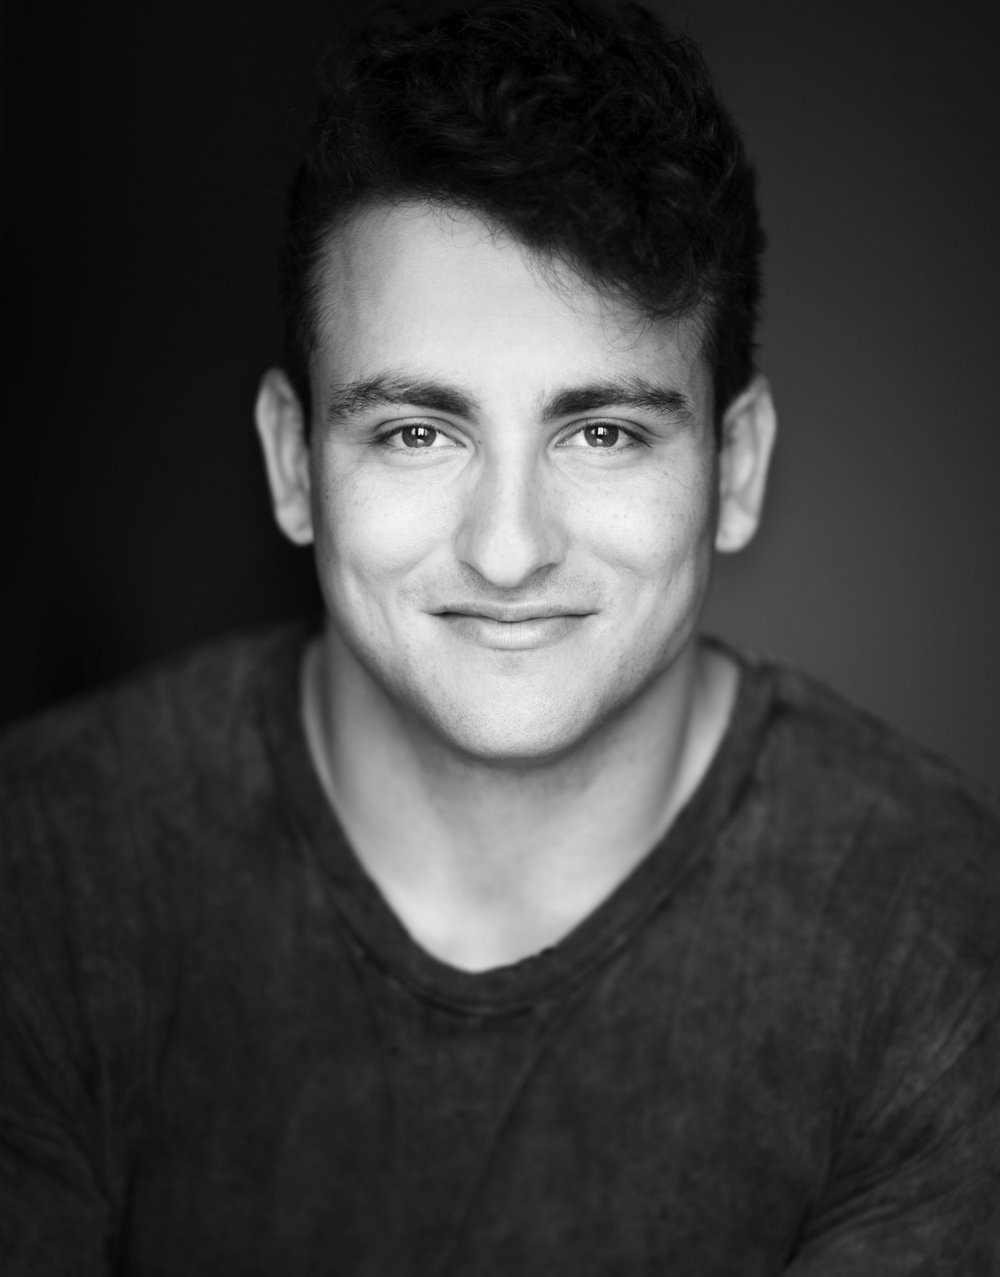 Daniel Raso - Cast - Hailing from Sydney, Daniel's musical theatre career began with High School Musical (Disney Theatricals). Most recently he appeared as 'Michael Wormwood' in Matilda The Musical (RSC; Louise Withers). Other credits include 'Sonny' in Grease (GFO), 'Cash' in The Tap Pack (The Tap Pack Pty Ltd) and 'Paul' in Kiss Me Kate (Hebei Salang Productions). He also assisted choreographer, Kelly Devine, on the world premiere of Doctor Zhivago (GFO).Television appearances include Puberty Blues, A Place To Call Home, Comedy Inc., as well as Bollywood feature films Orange and Mr. Perfect. He was also a Top 24 finalist on the last series of Australian Idol.